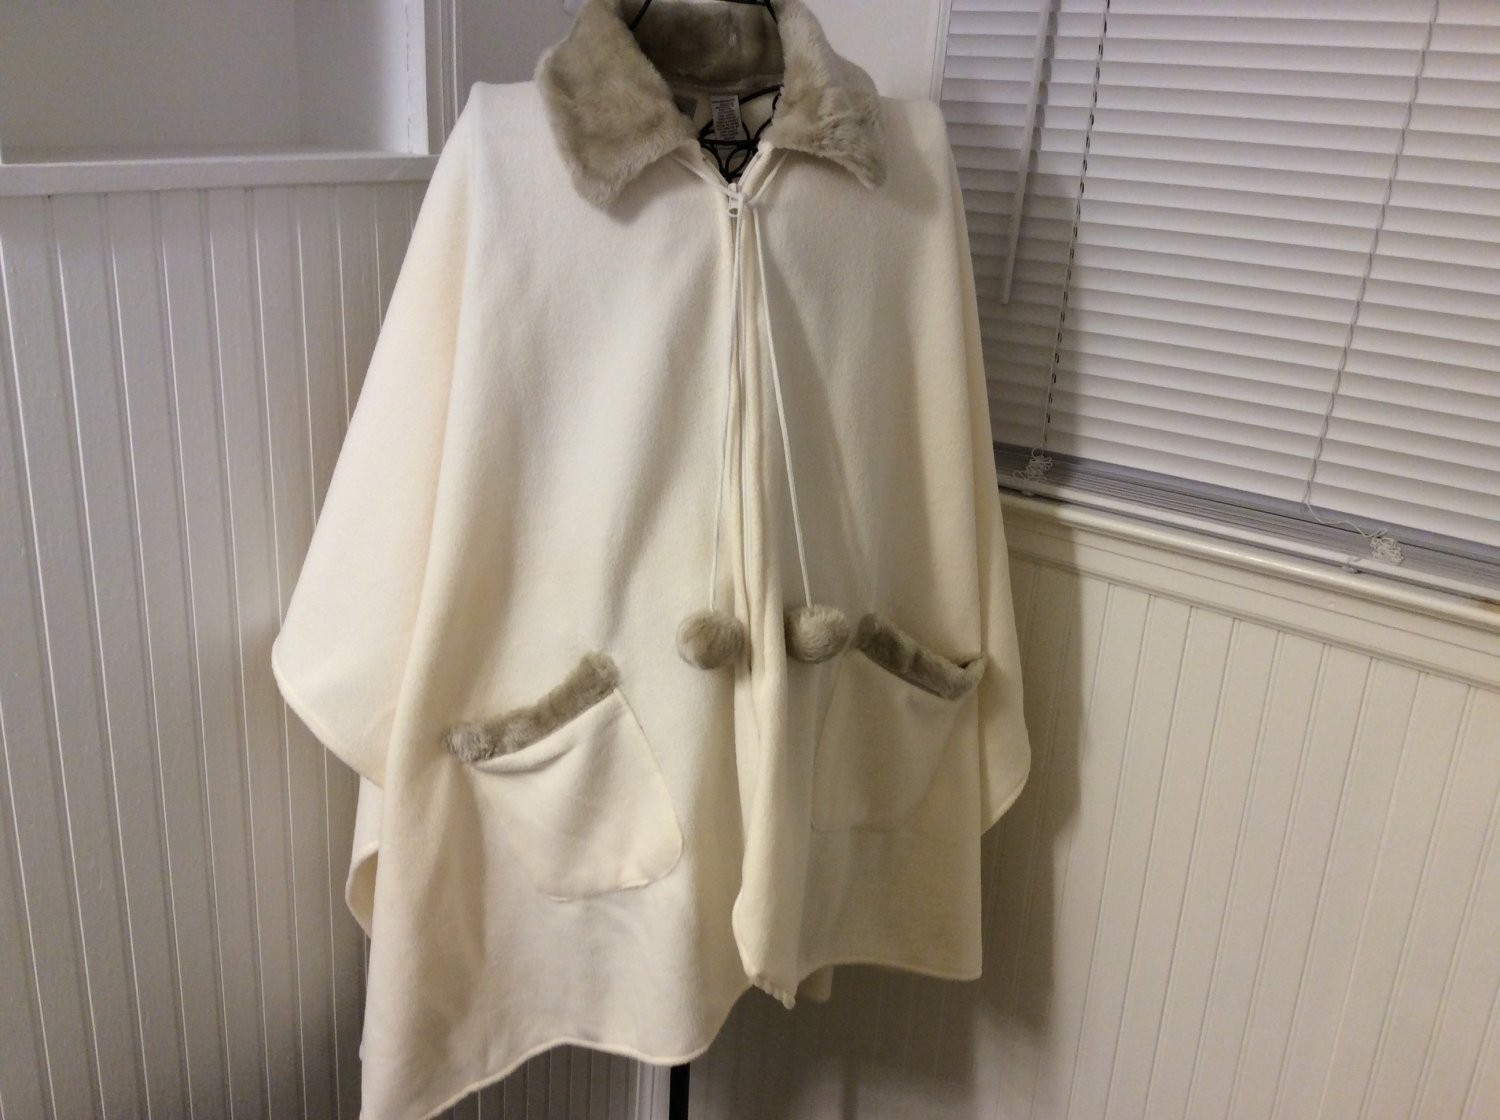 Ladies Fleece Cream Ivory Winter Cape Poncho Wrap by LeModa One Size Fits Most